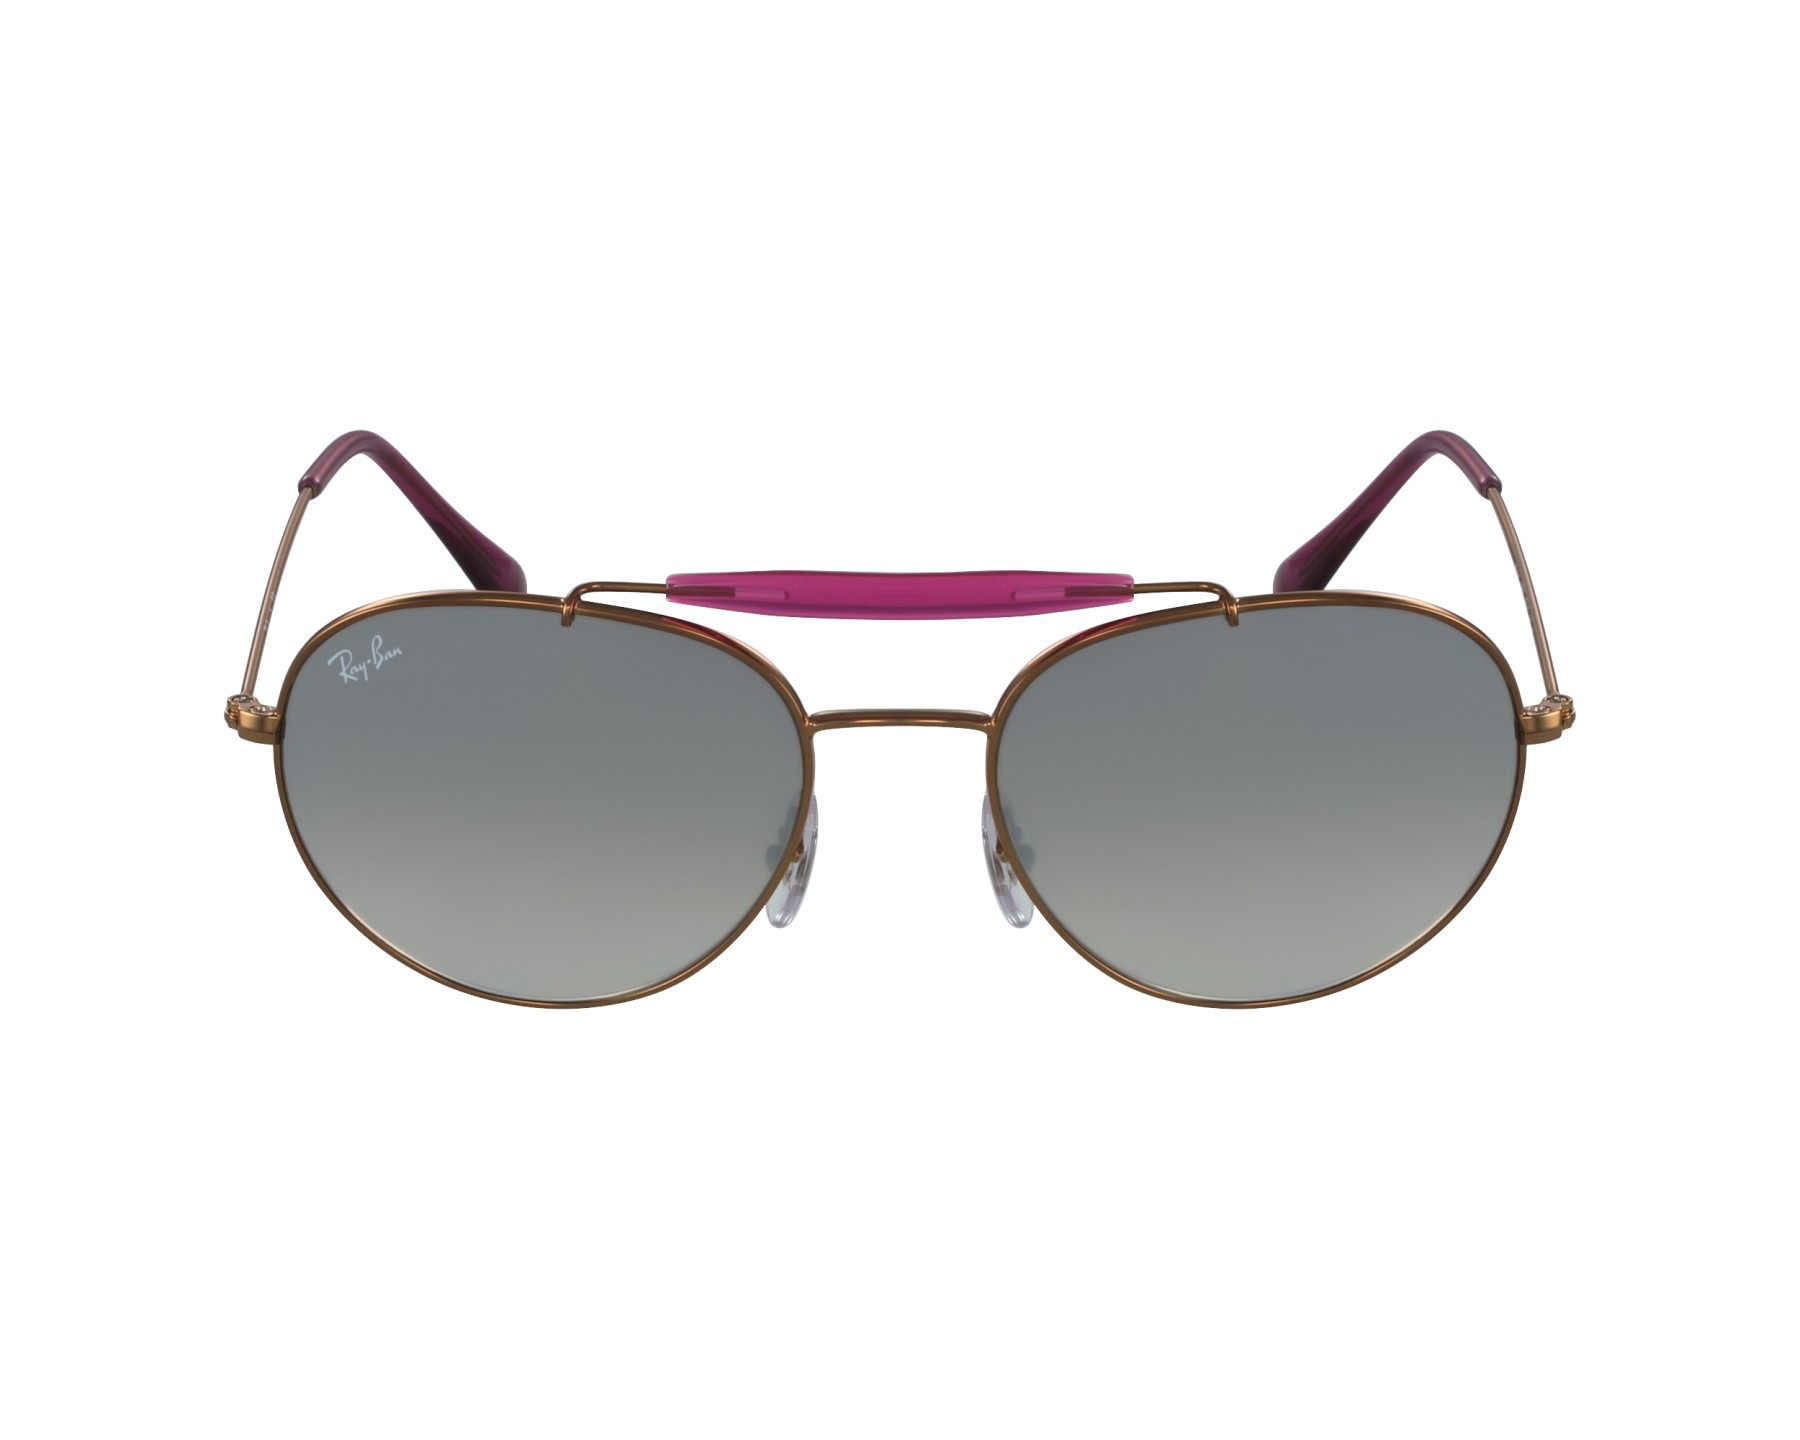 f5f73be057 Sunglasses Ray-Ban RB-3540 198 90 53-18 Gold Pink profile